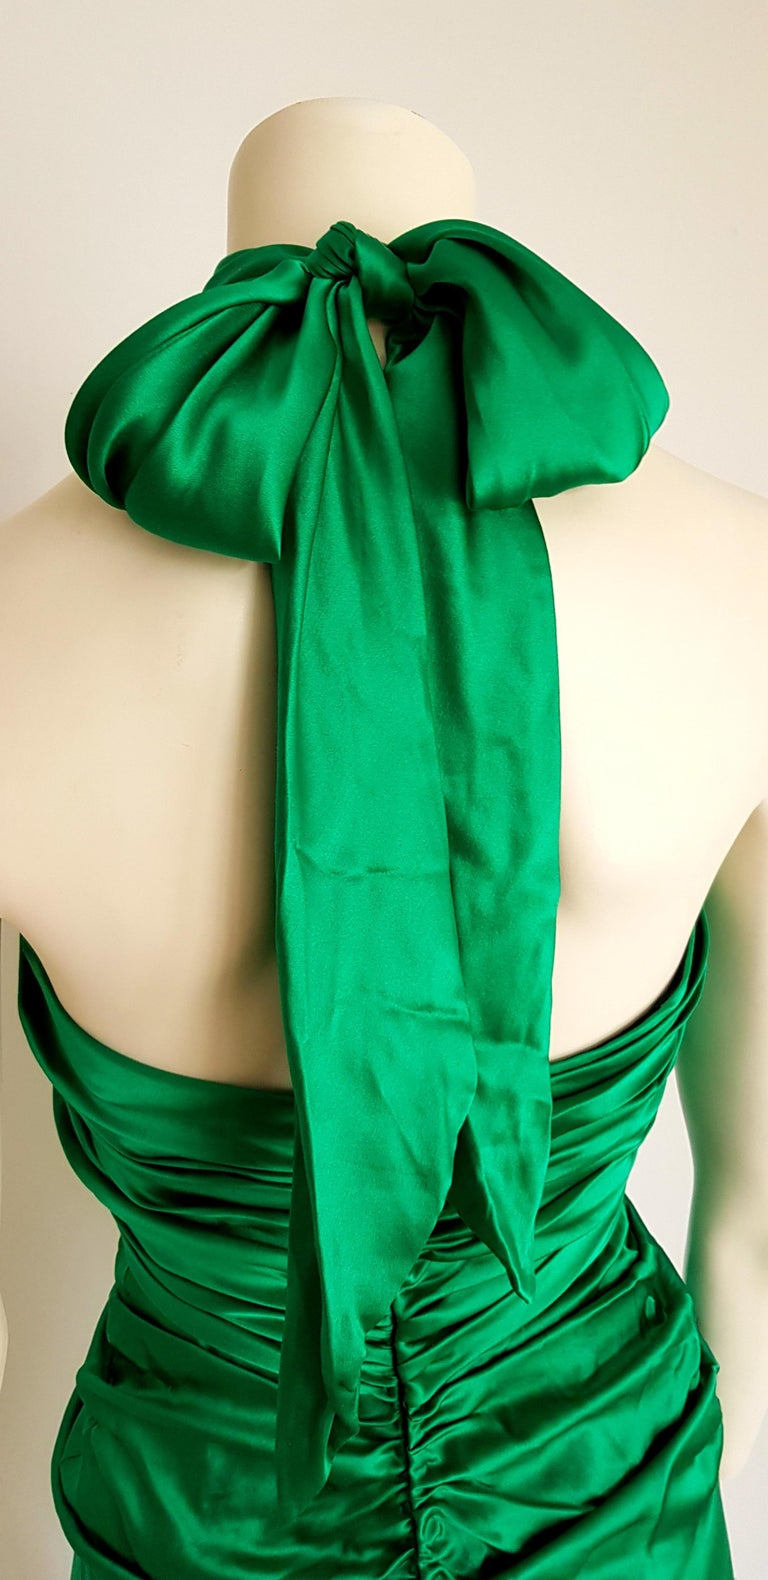 VALENTINO Haute Couture Green Silk Gown Evening Dress - Unworn, New For Sale 2